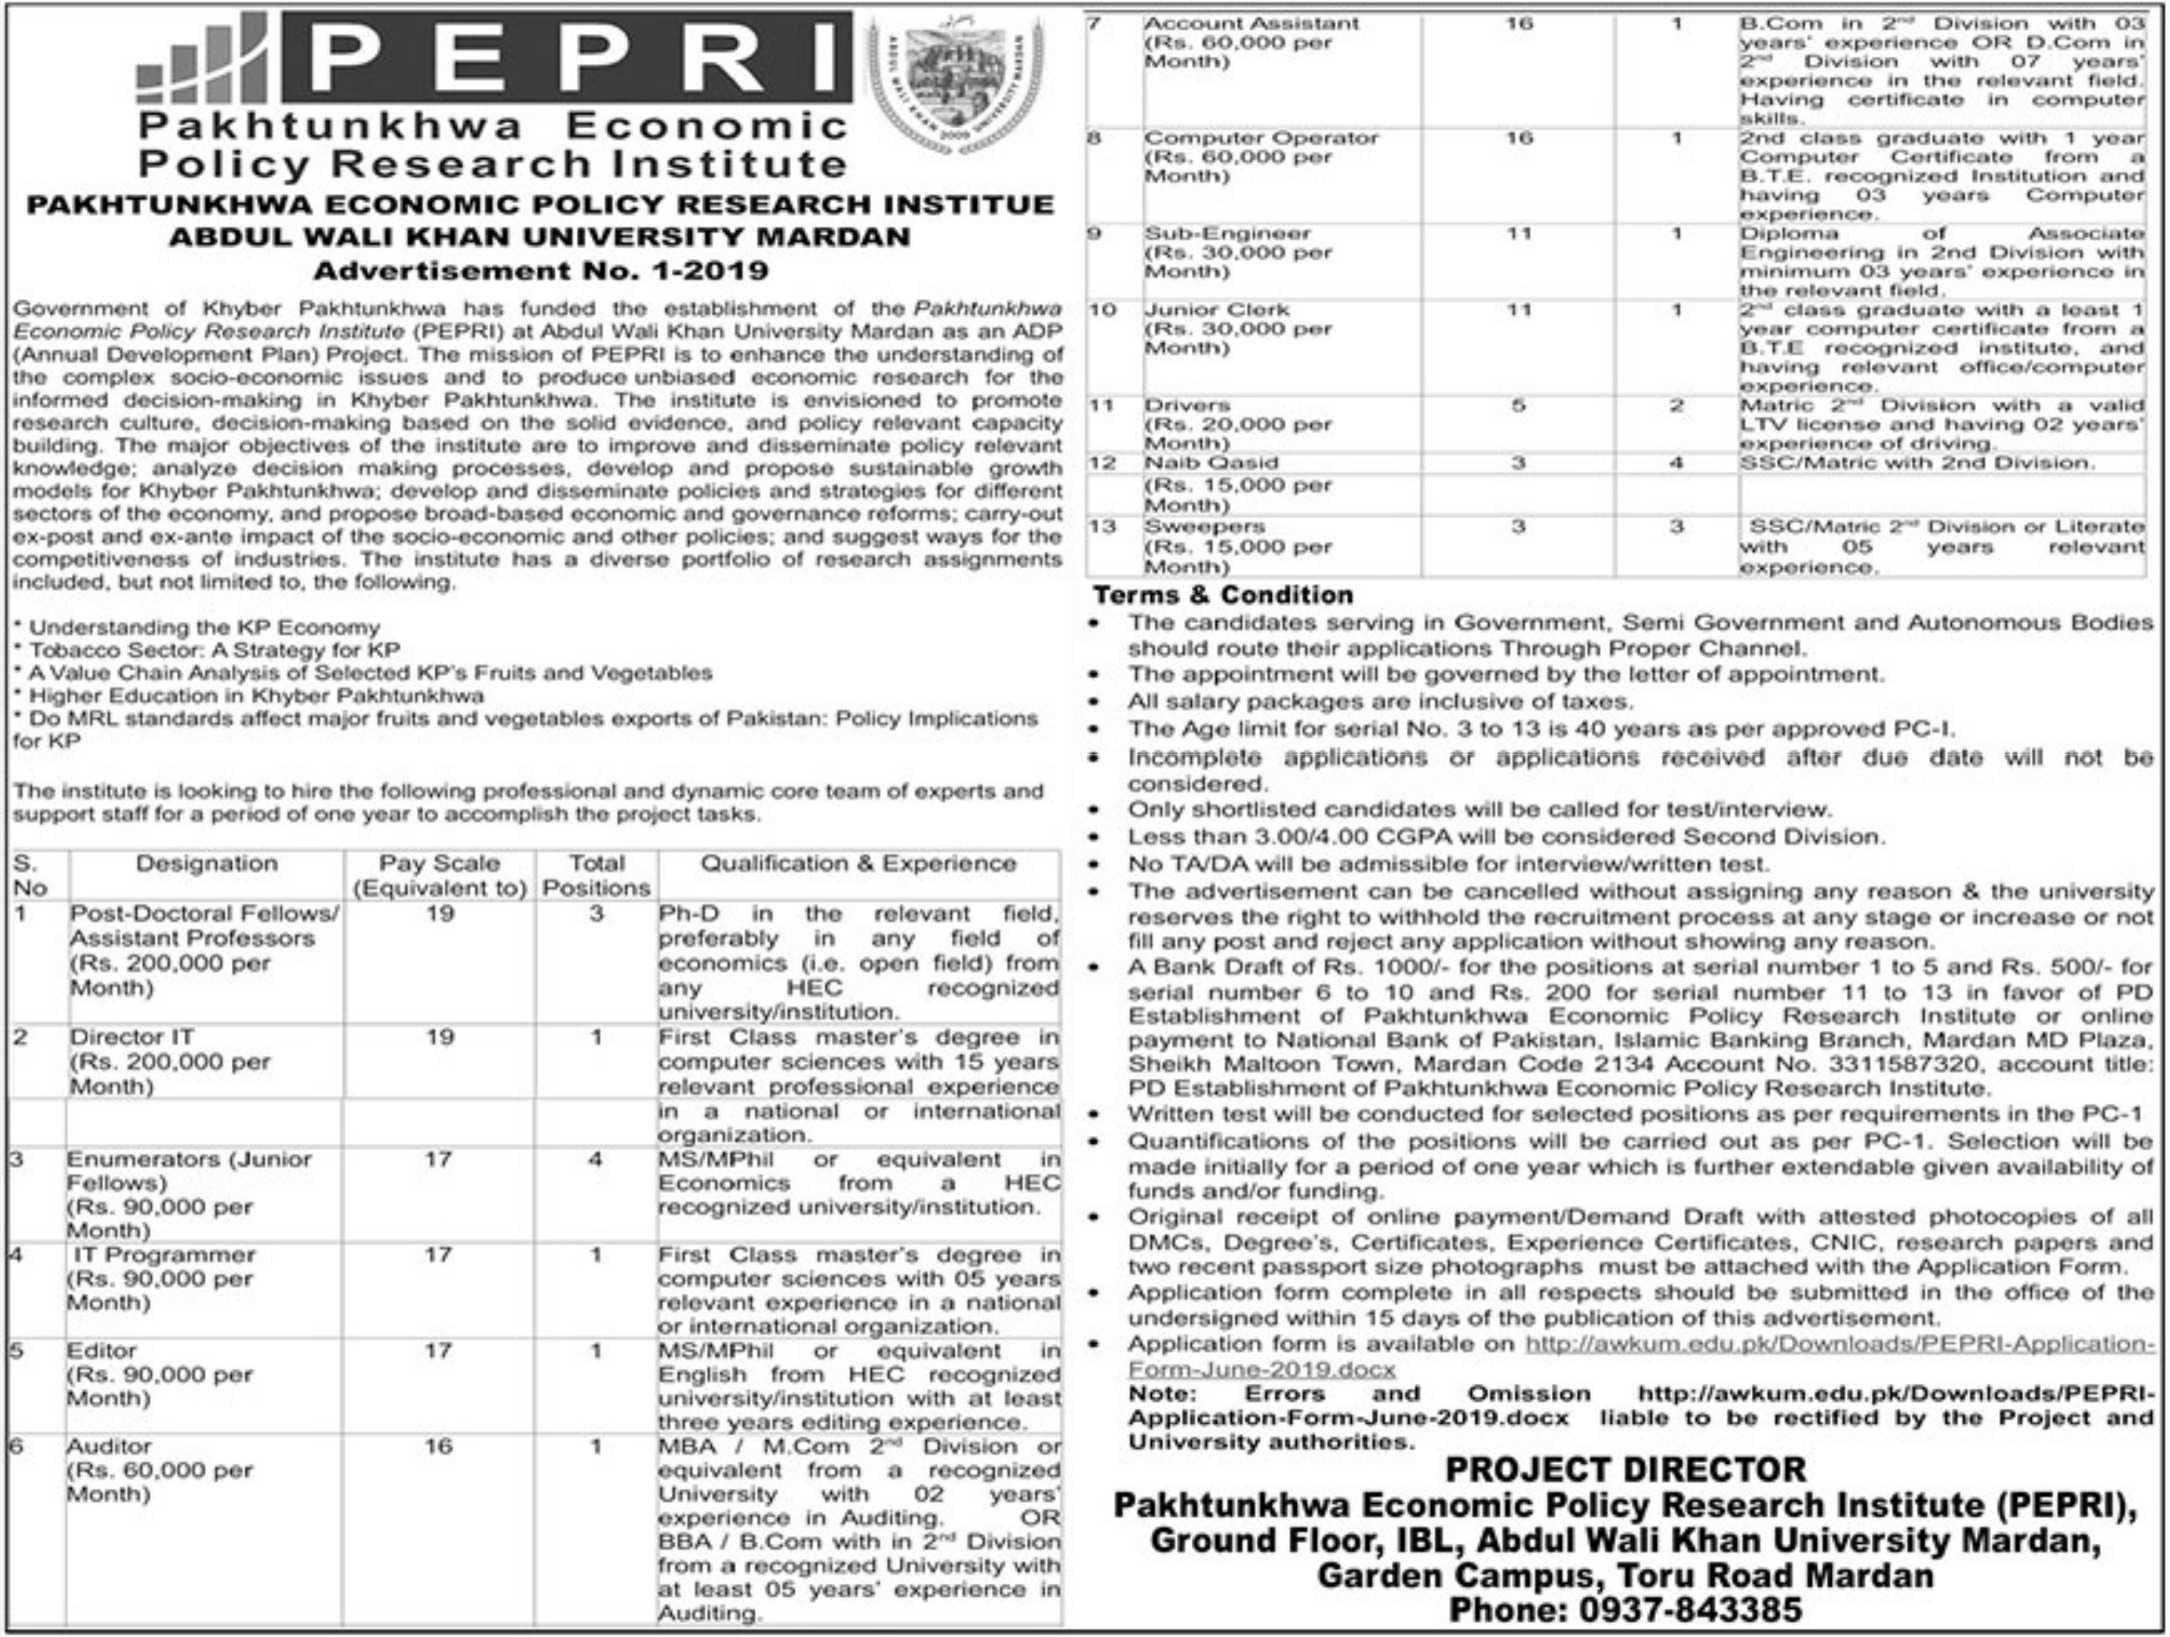 Abdul Wali Khan University Mardan Jobs 2019 PEPRI Pakhtunkhwa Economic Policy Research Institute